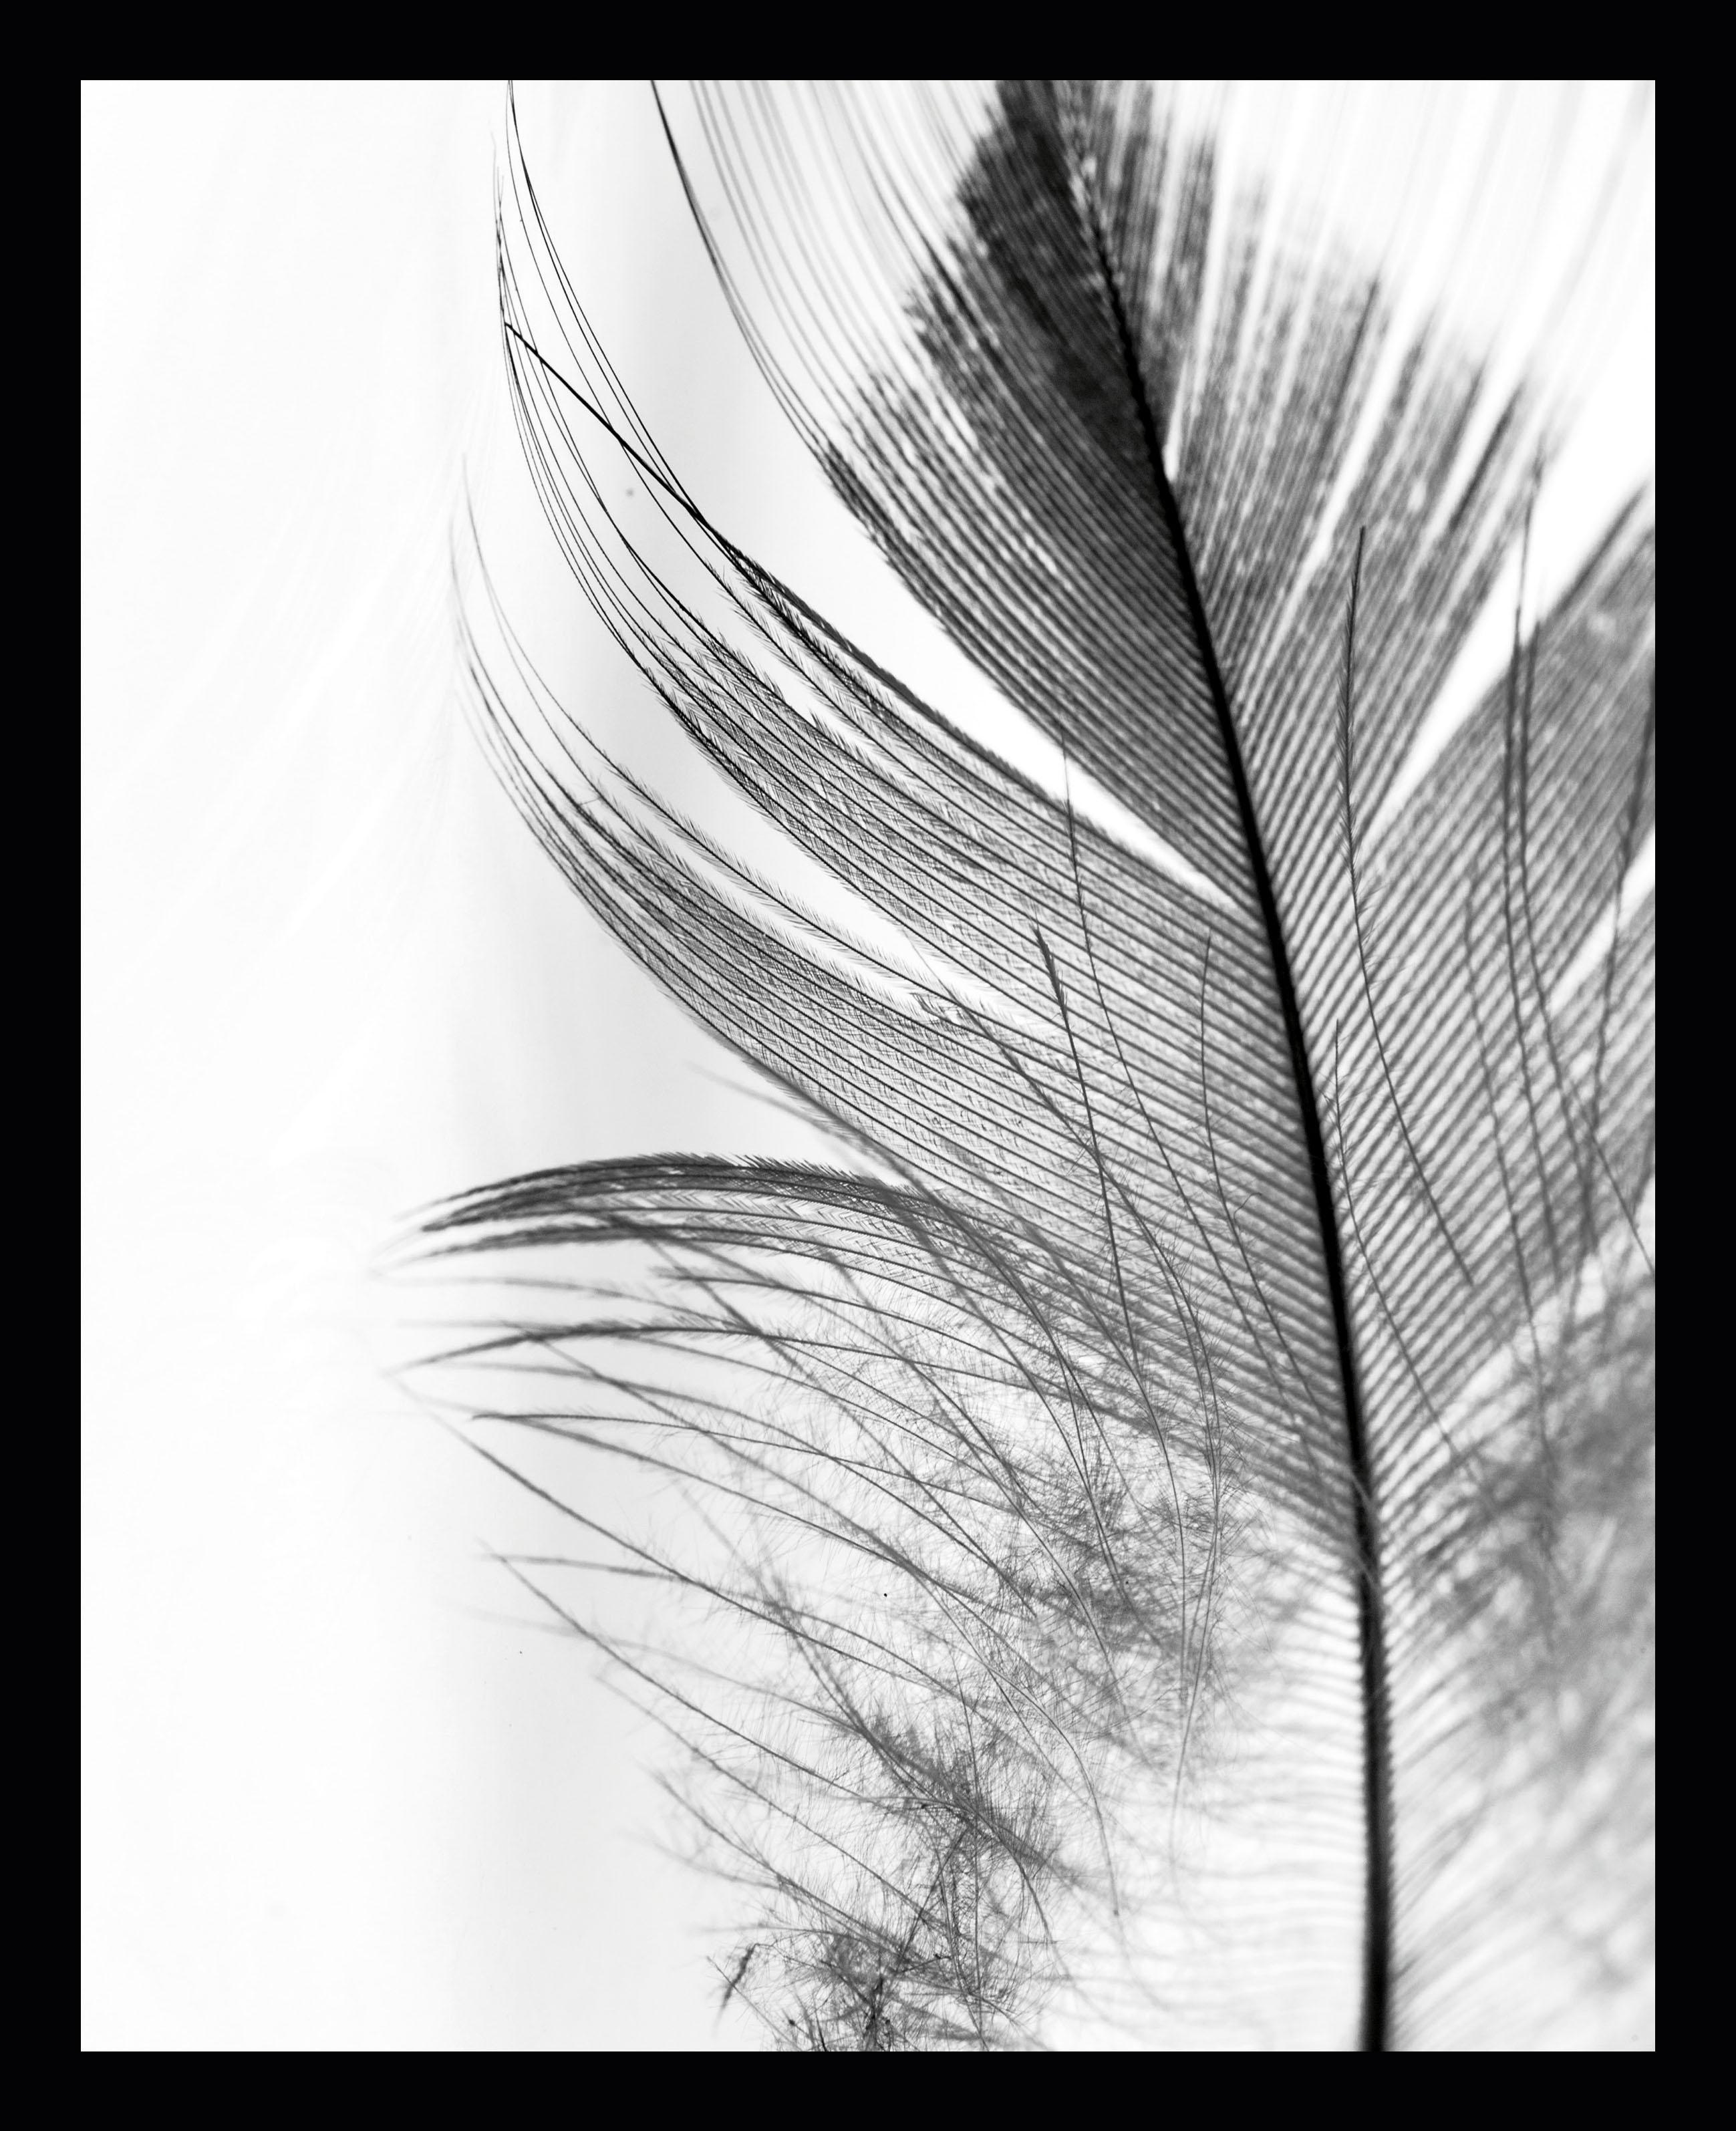 Stampa digitale incorniciata Feather, Immagine: stampa digitale su carta, Cornice: materiale sintetico (PU), Retro: pannelli di fibre a media, Immagine: nero, bianco cornice: nero, Larg. 30 x Alt. 40 cm